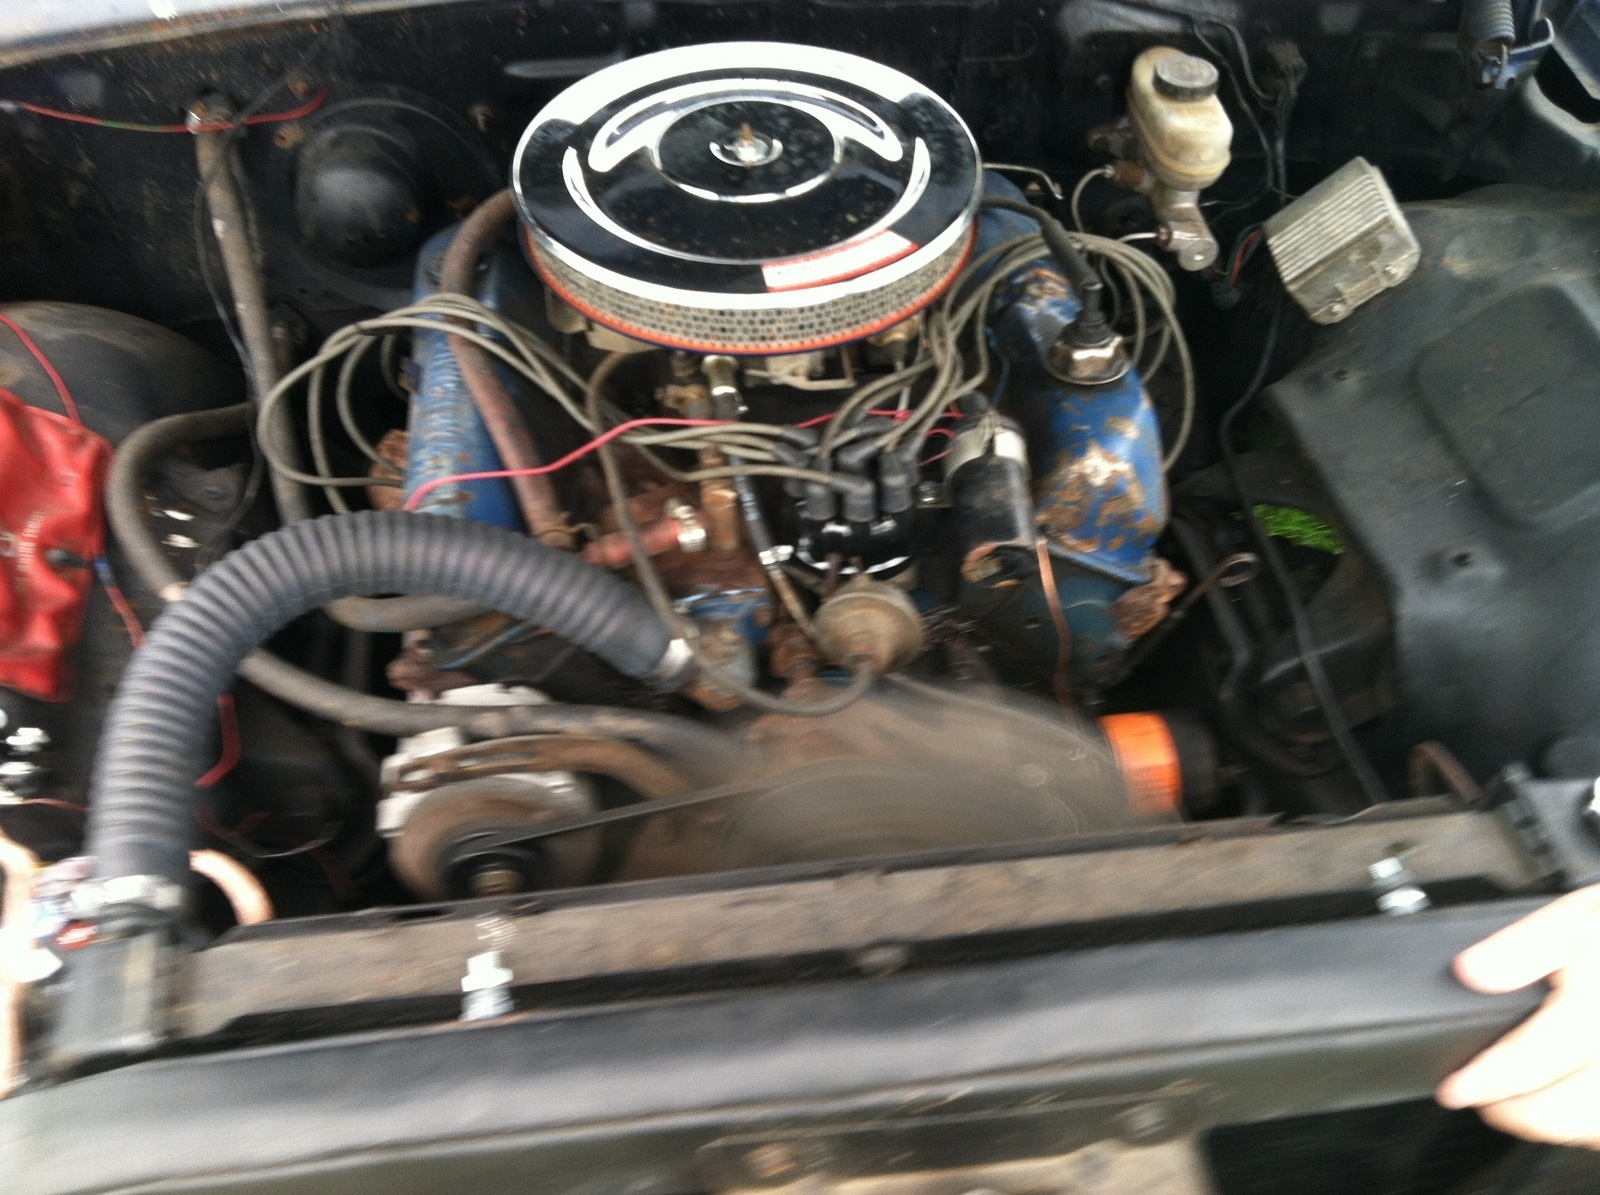 hight resolution of i need to verify the engine in my 62 galaxie 500 i was told by the last owner that he believed it was a 1971 390 from a pickup truck